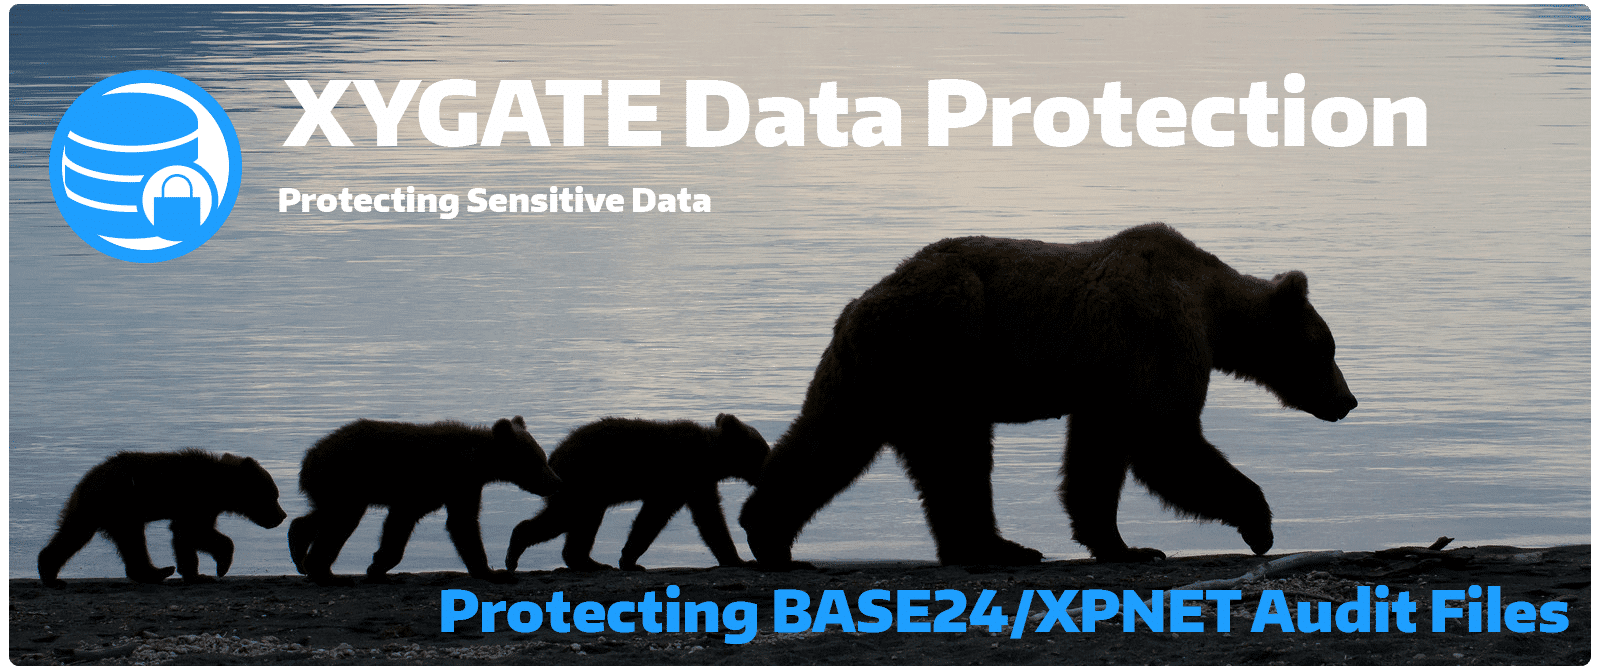 XDP Protecting BASE24 XPNET